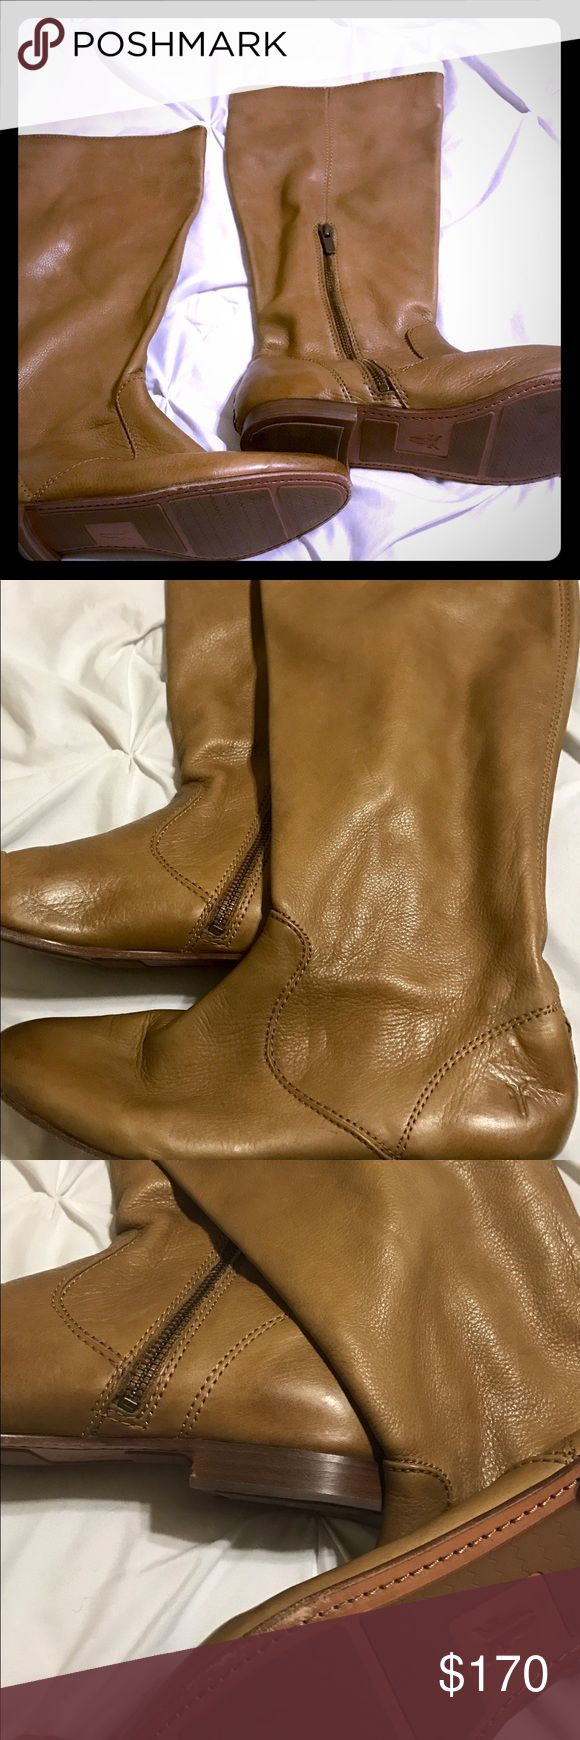 Frye women's mid calf boot size 9 Basically new. Worn 1x. Frye Shoes Heeled Boots